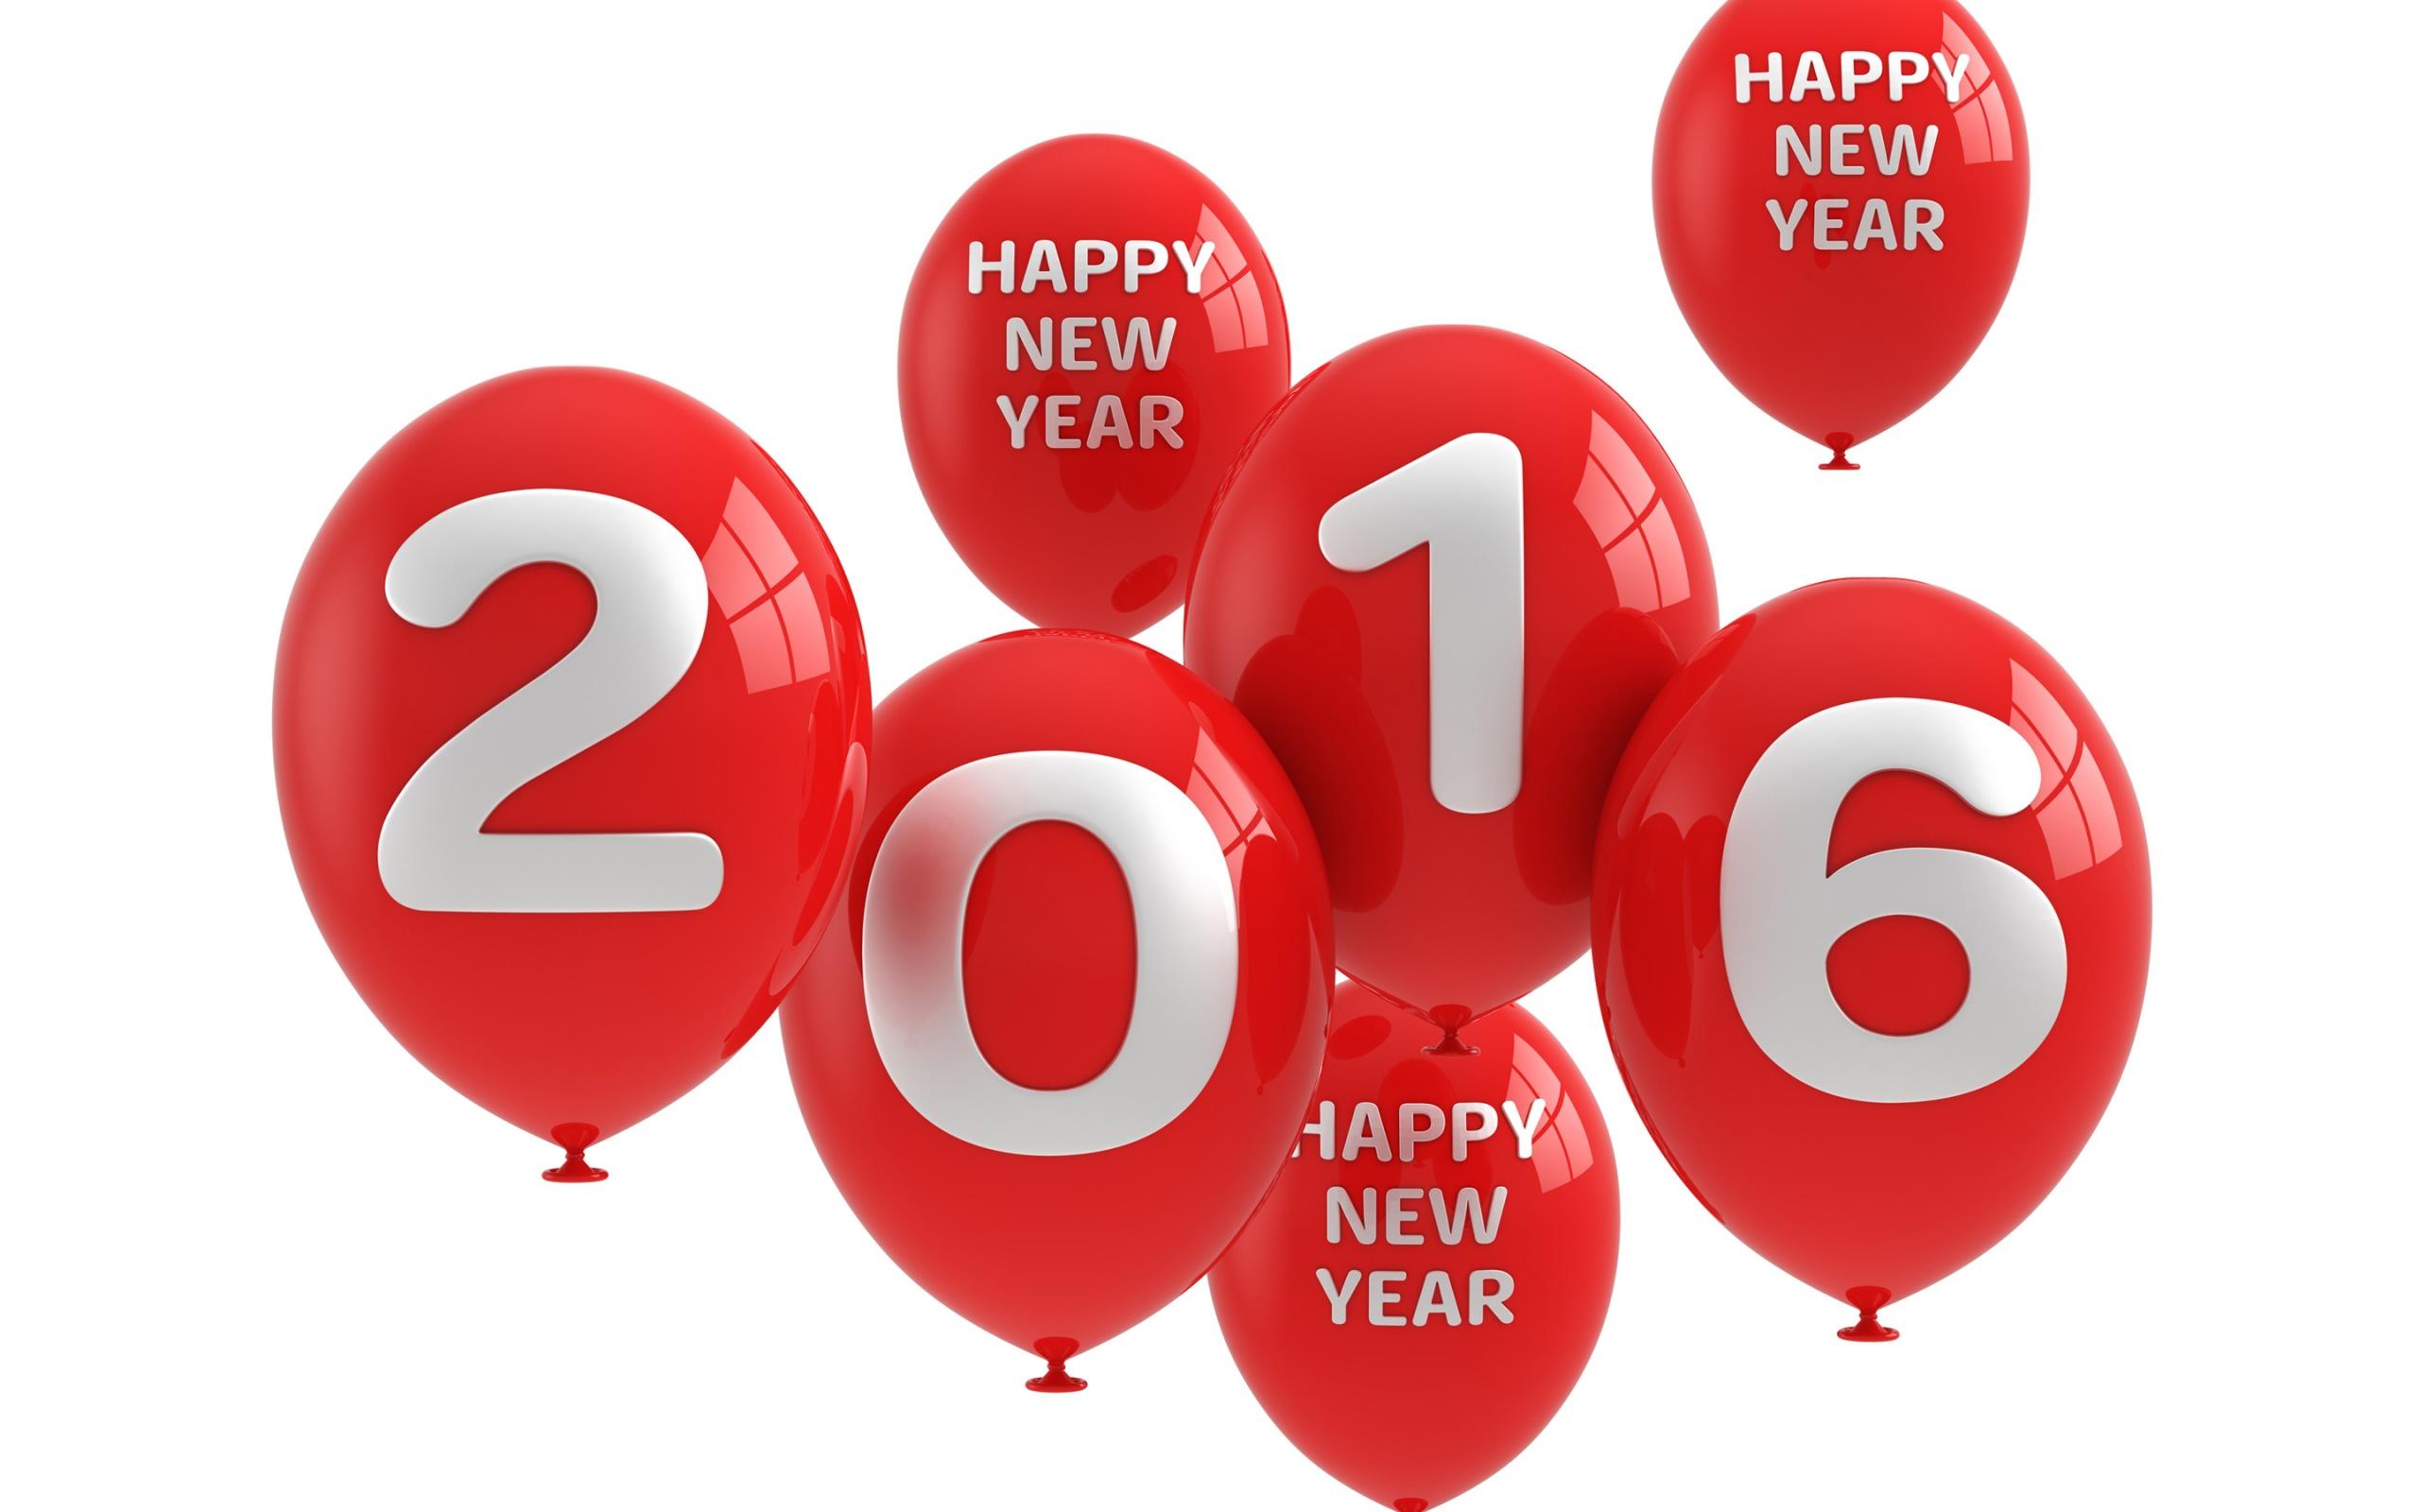 Happy New Year 2016 Balloons Red Greeting HD Wallpaper 2560x1600